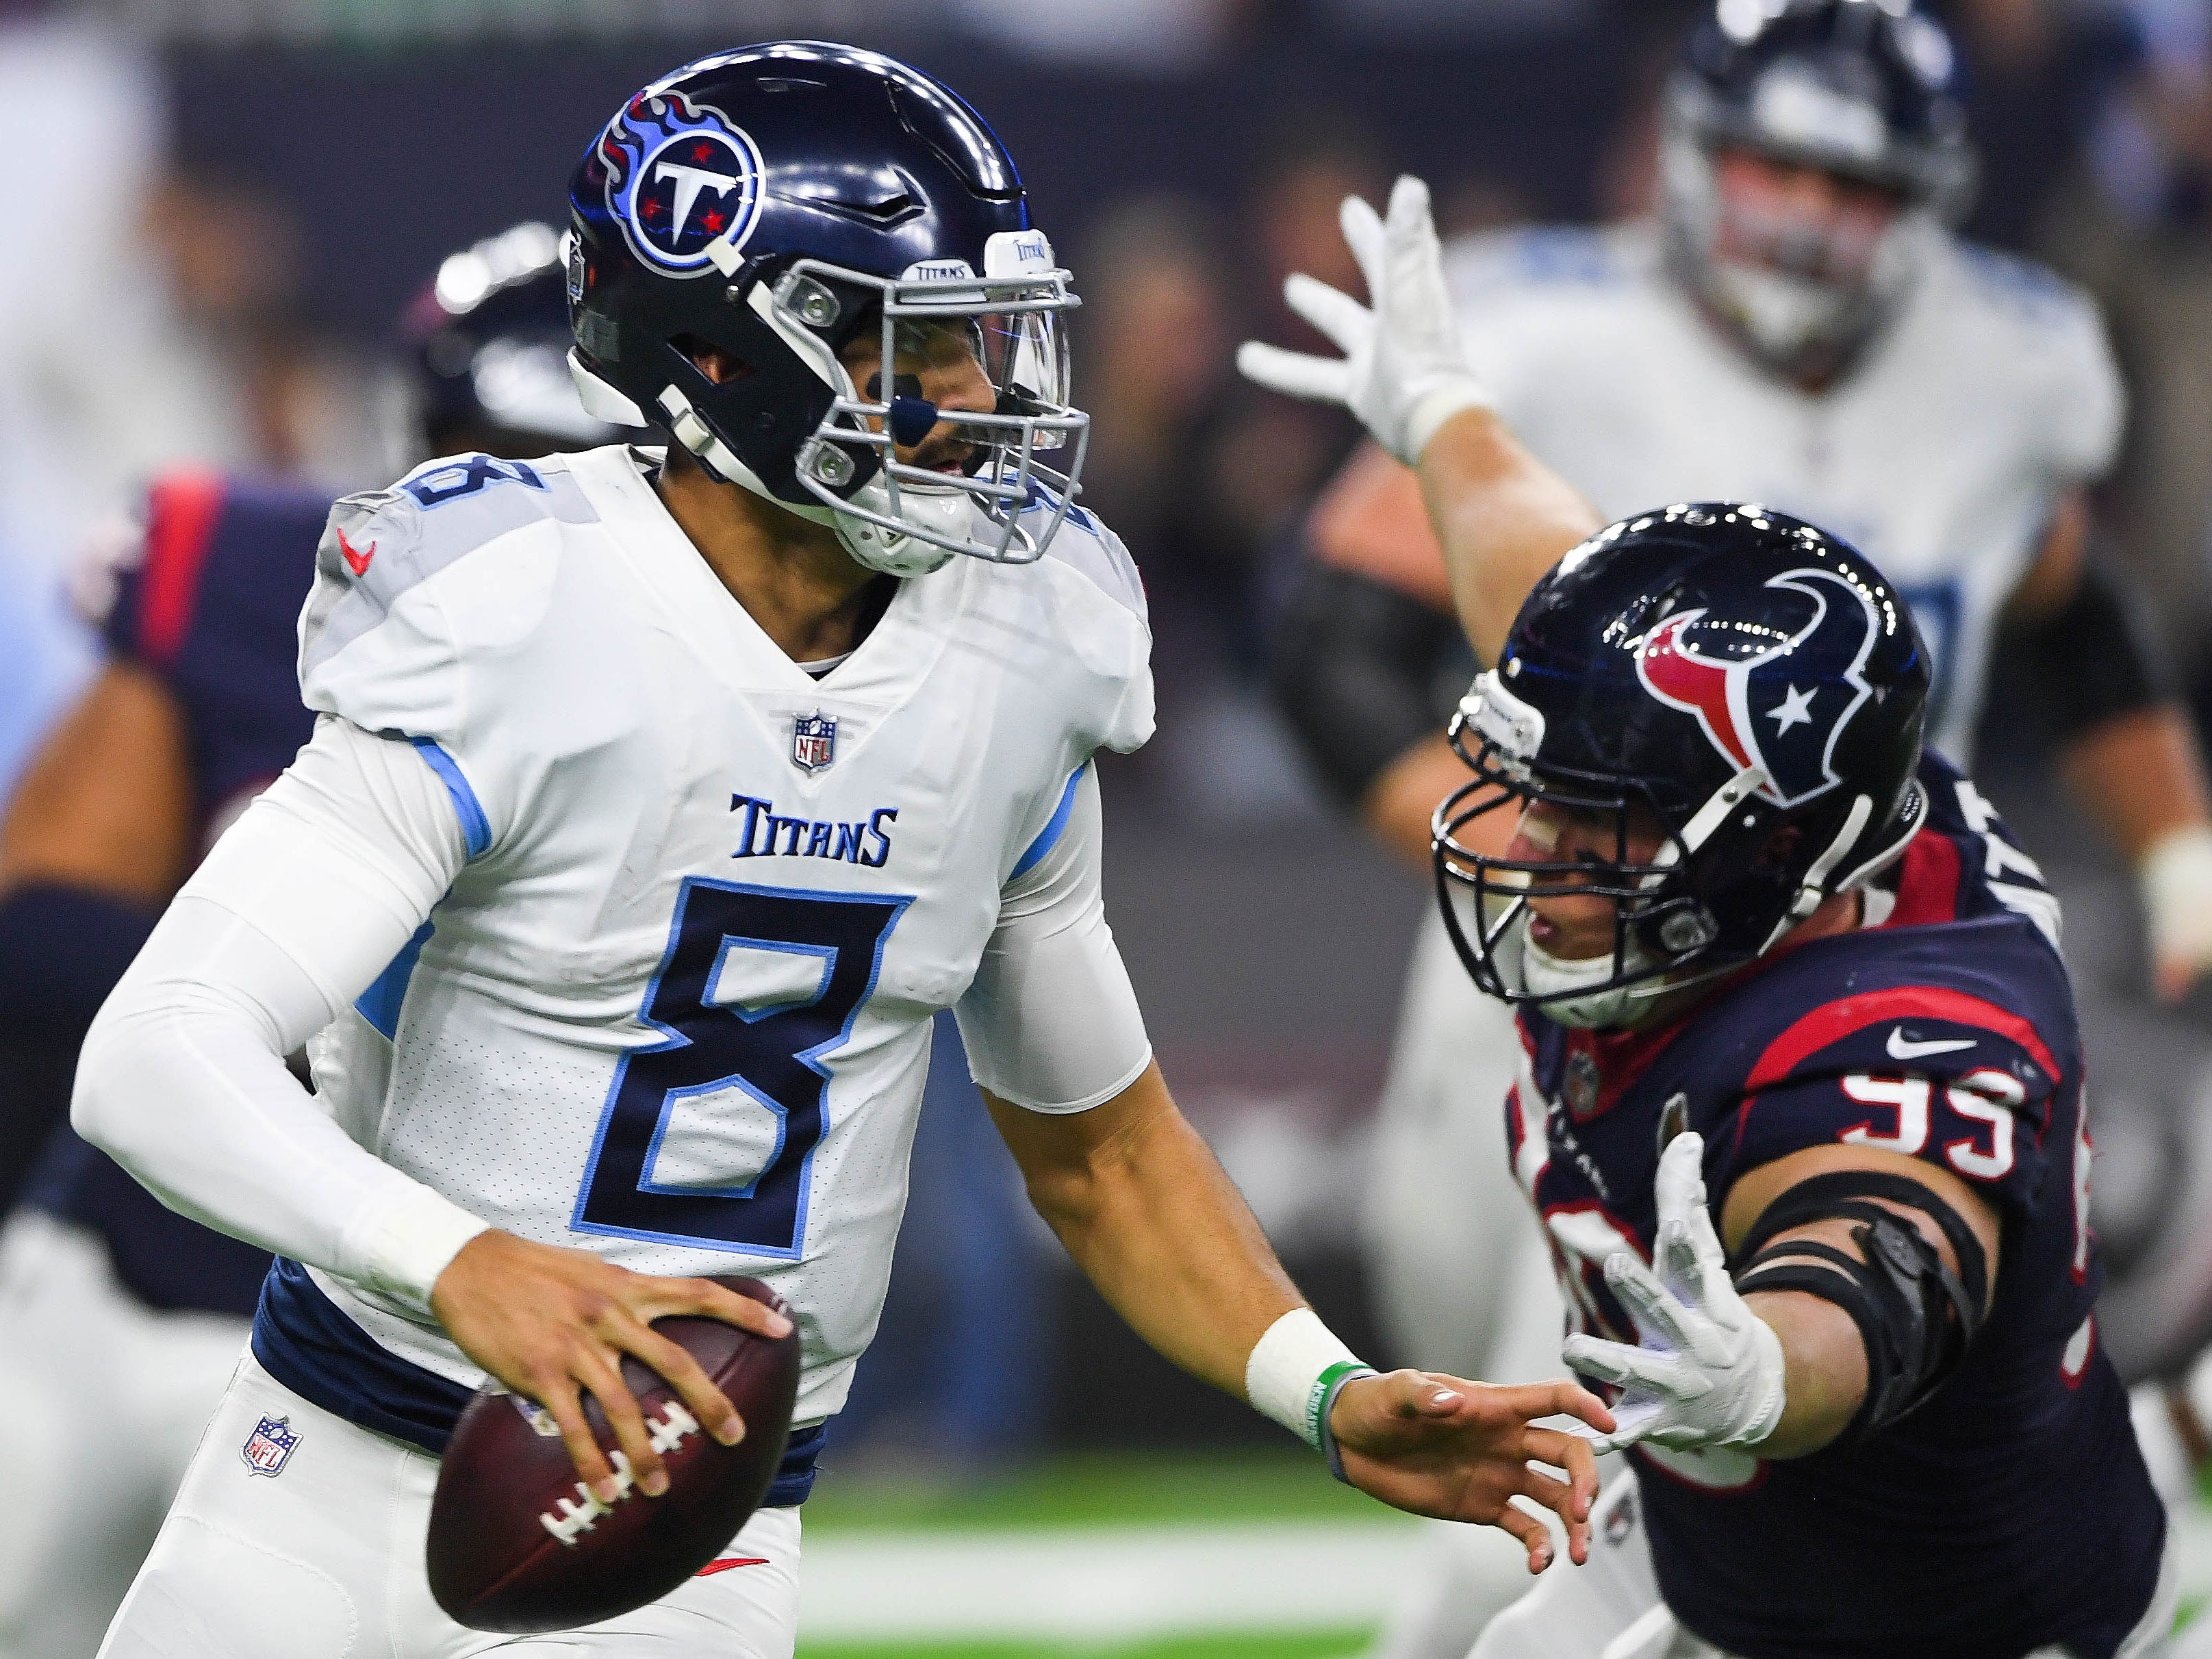 17. Titans (15): Defense suddenly unraveling, allowing 72 points in consecutive losses to AFC South foes. Can't expect Marcus Mariota and Co. to overcome that.